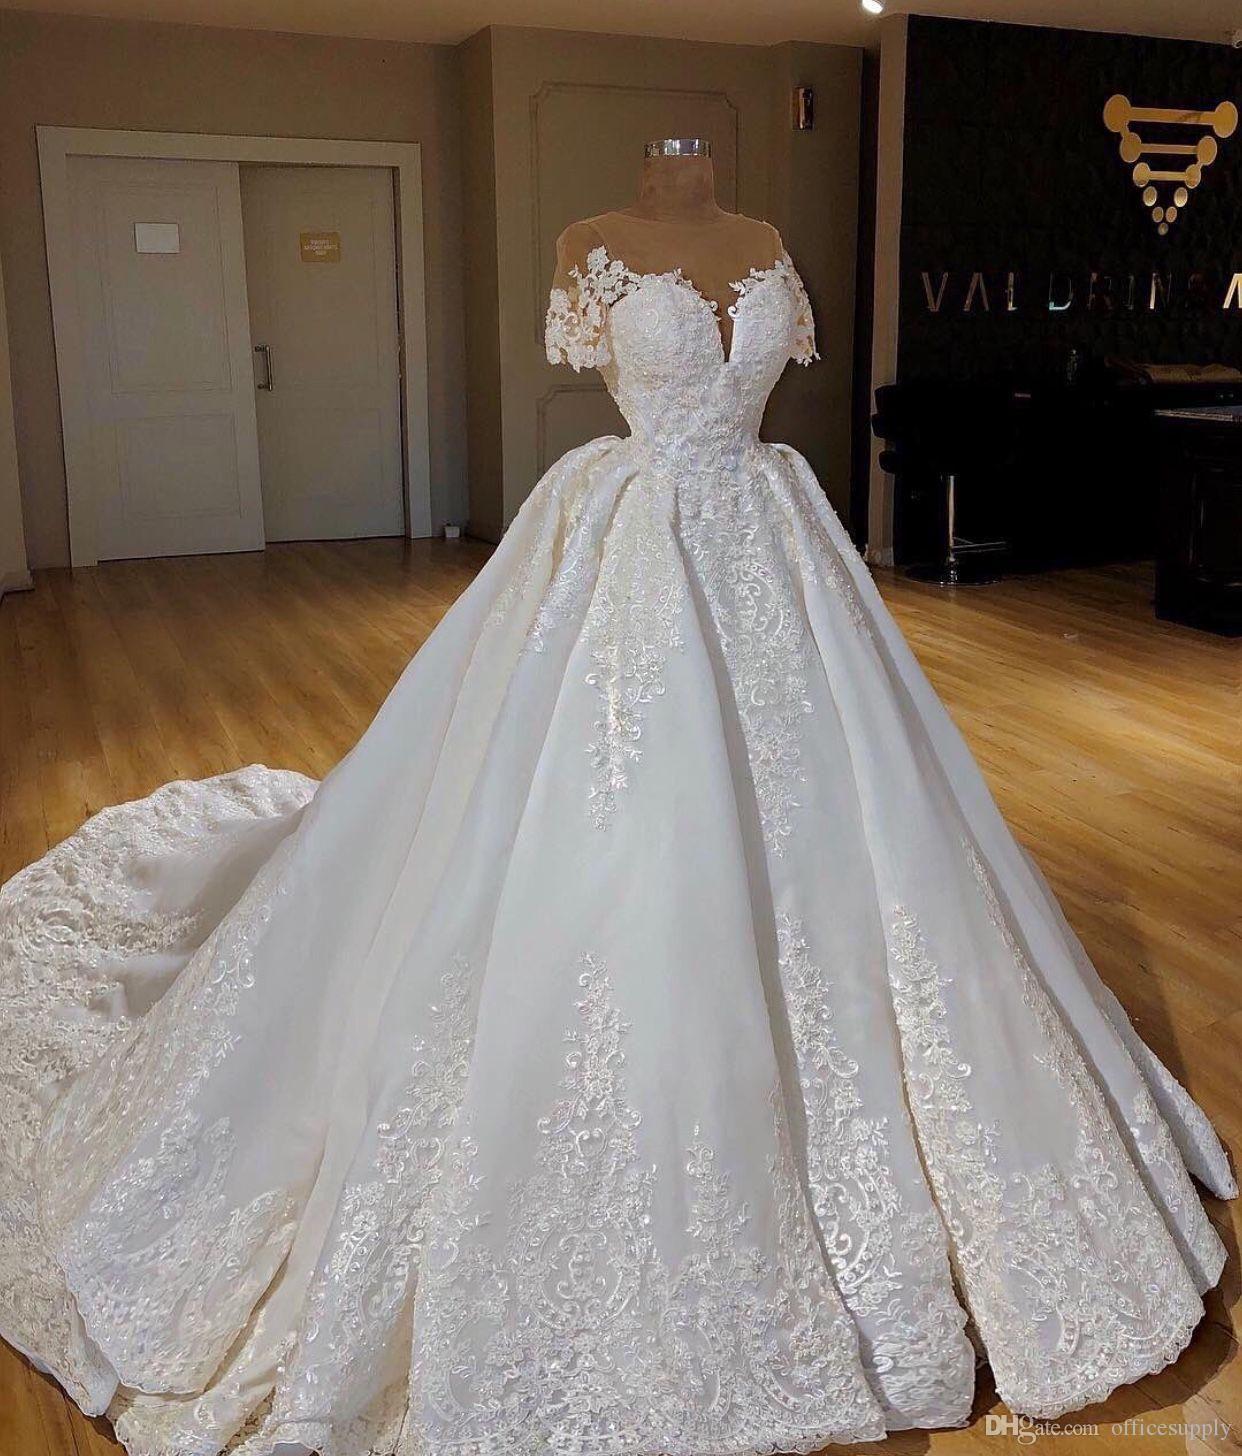 New Islamic Muslim Wedding Dresses 2019 Lace Bling Short Sleeves Arabic Bridal Gowns Ball Gowns Wedding Wedding Dresses Wedding Dresses Lace [ 1456 x 1242 Pixel ]